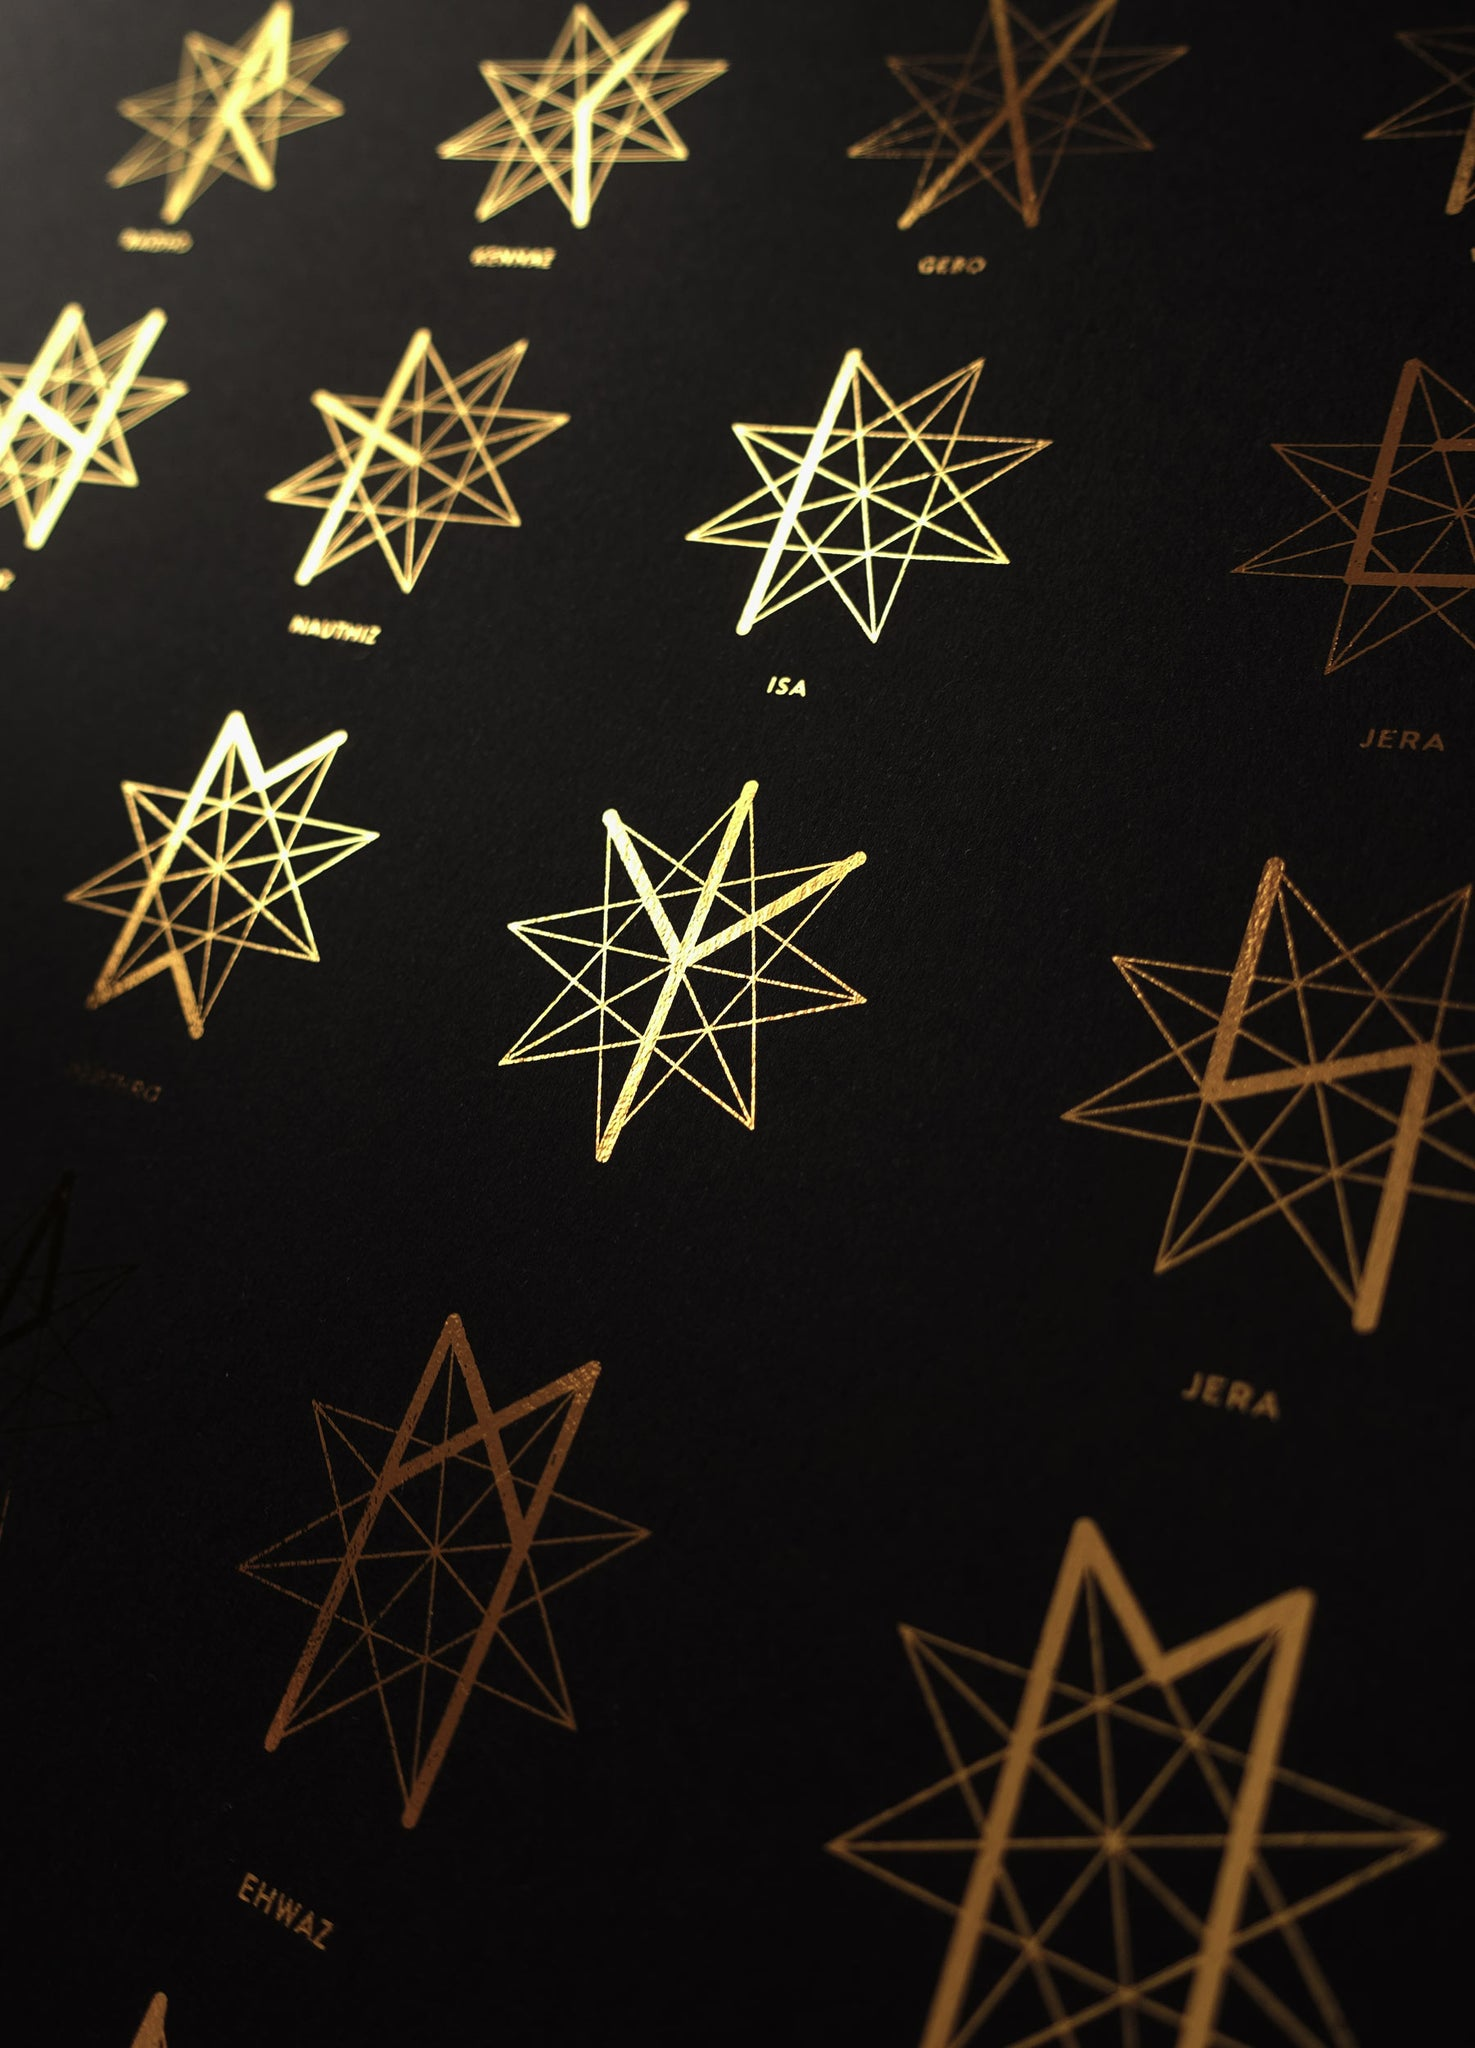 The rune star, set of 24 runes in gold foil black art print by studio Cocorrina design